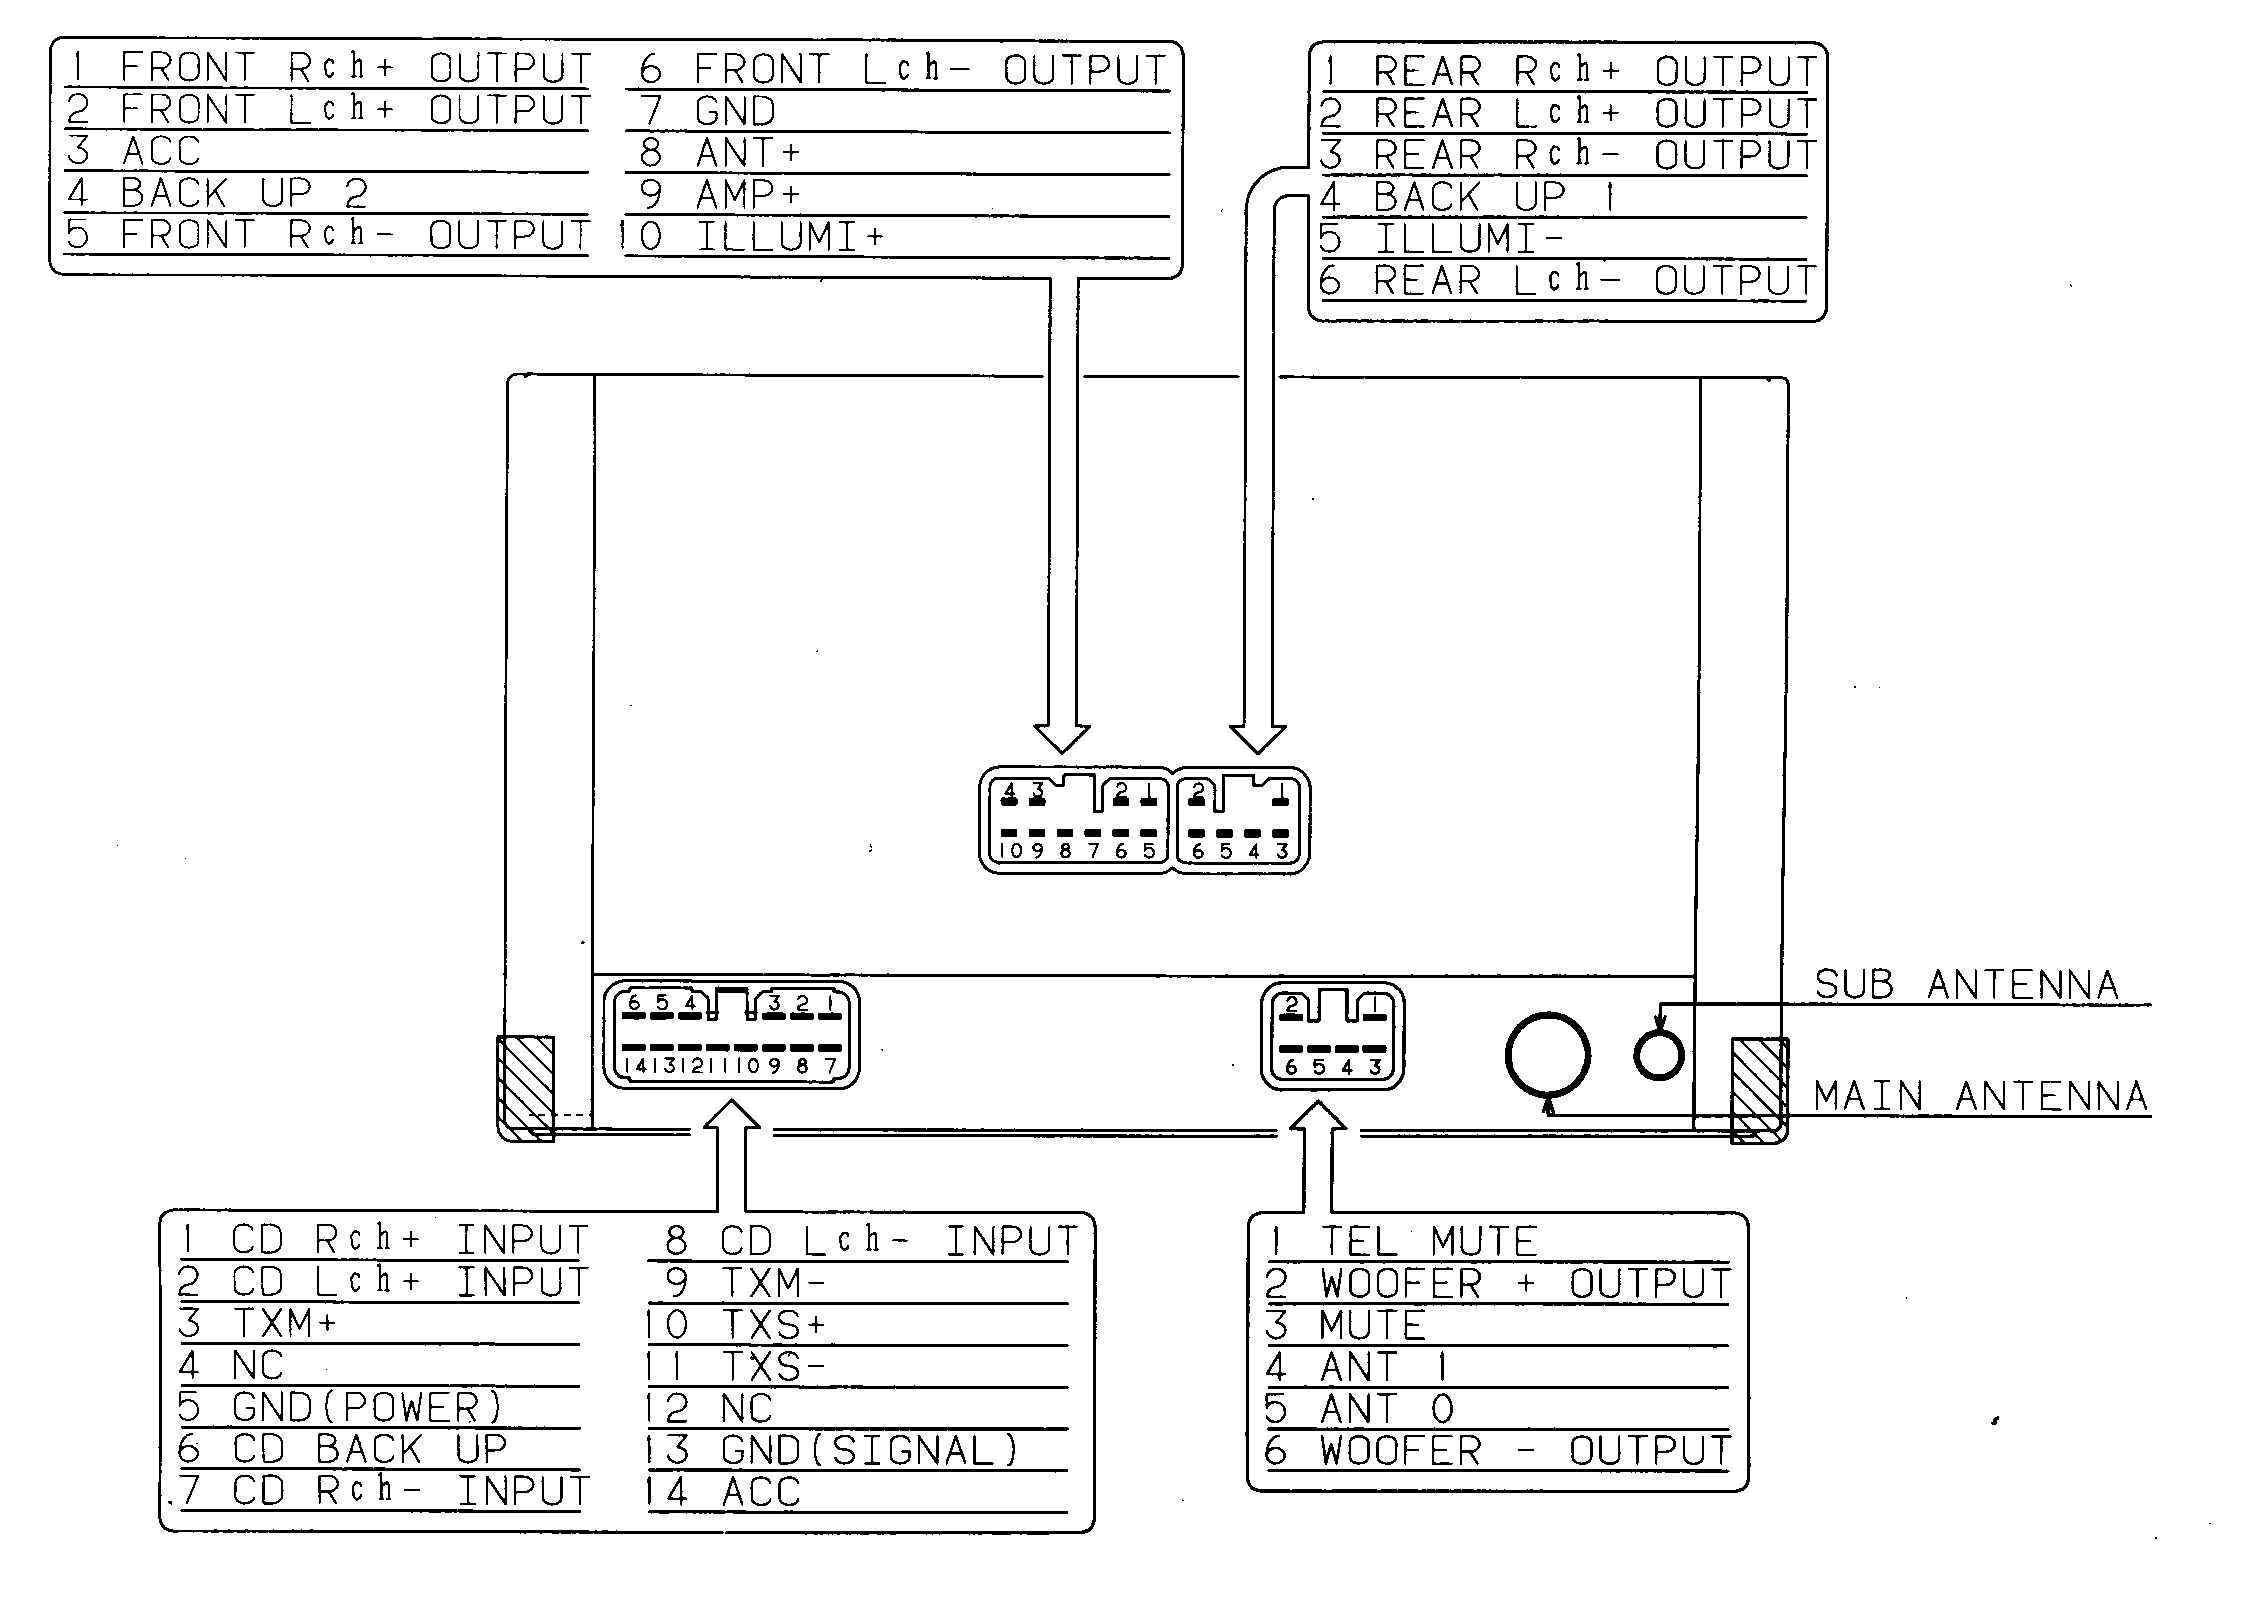 Toyota Innova Car Stereo Wiring Diagram 39 Images Gm Delco 2002 Lexus Harness Pinout Connector Wire 1996 Jeep Grand Cherokee Radio